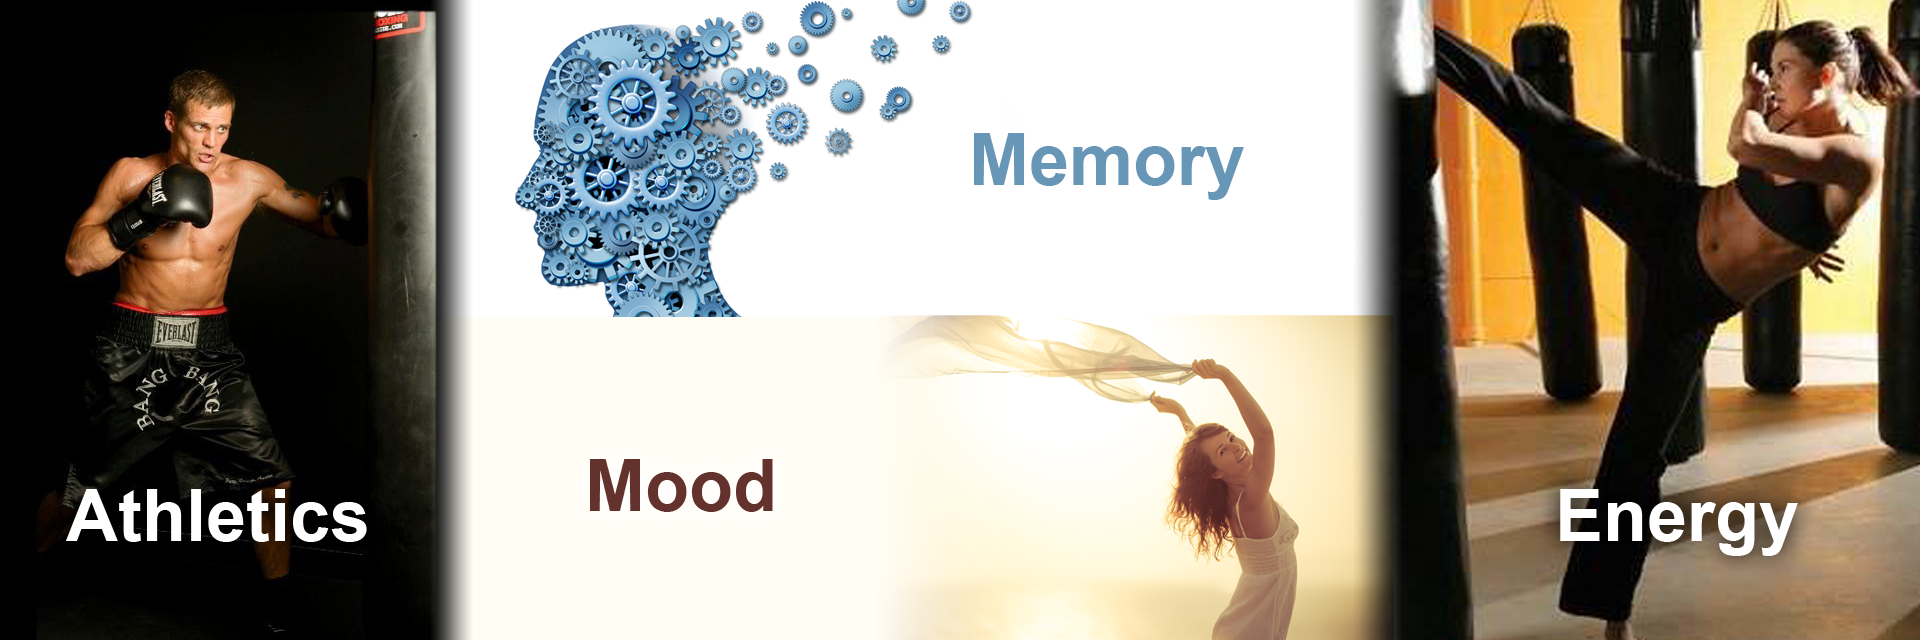 Athletics-Mood-Memory-Energy